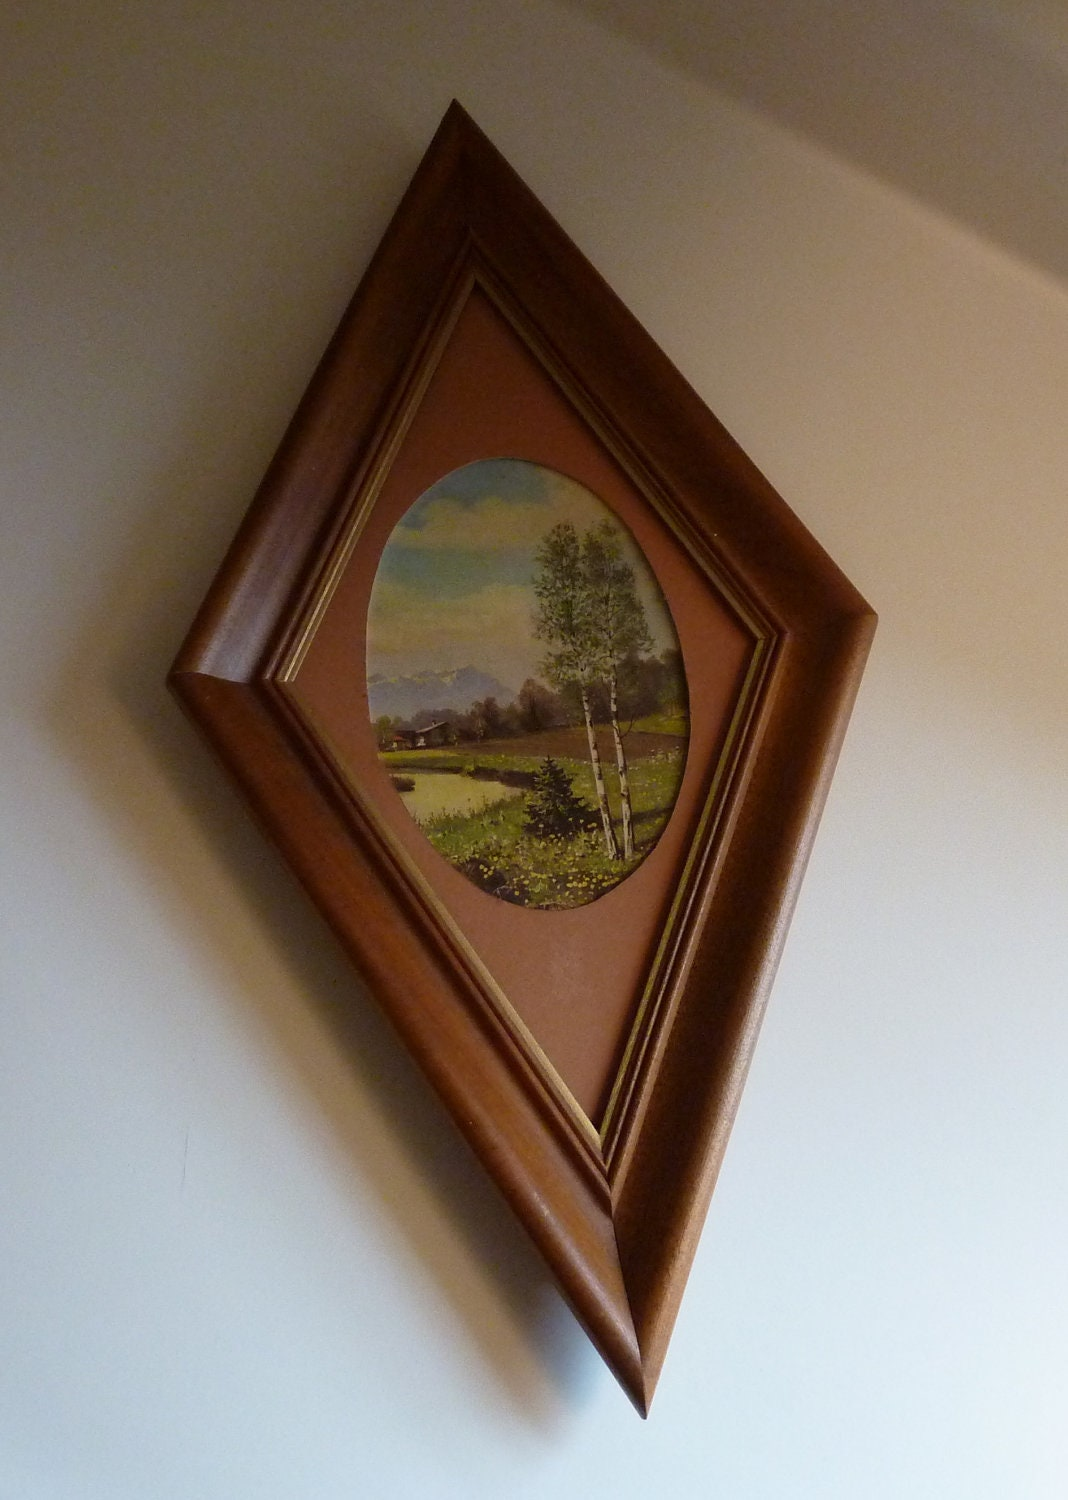 Diamond Shaped Wood Frame With Mounatin Scene Rustic Log